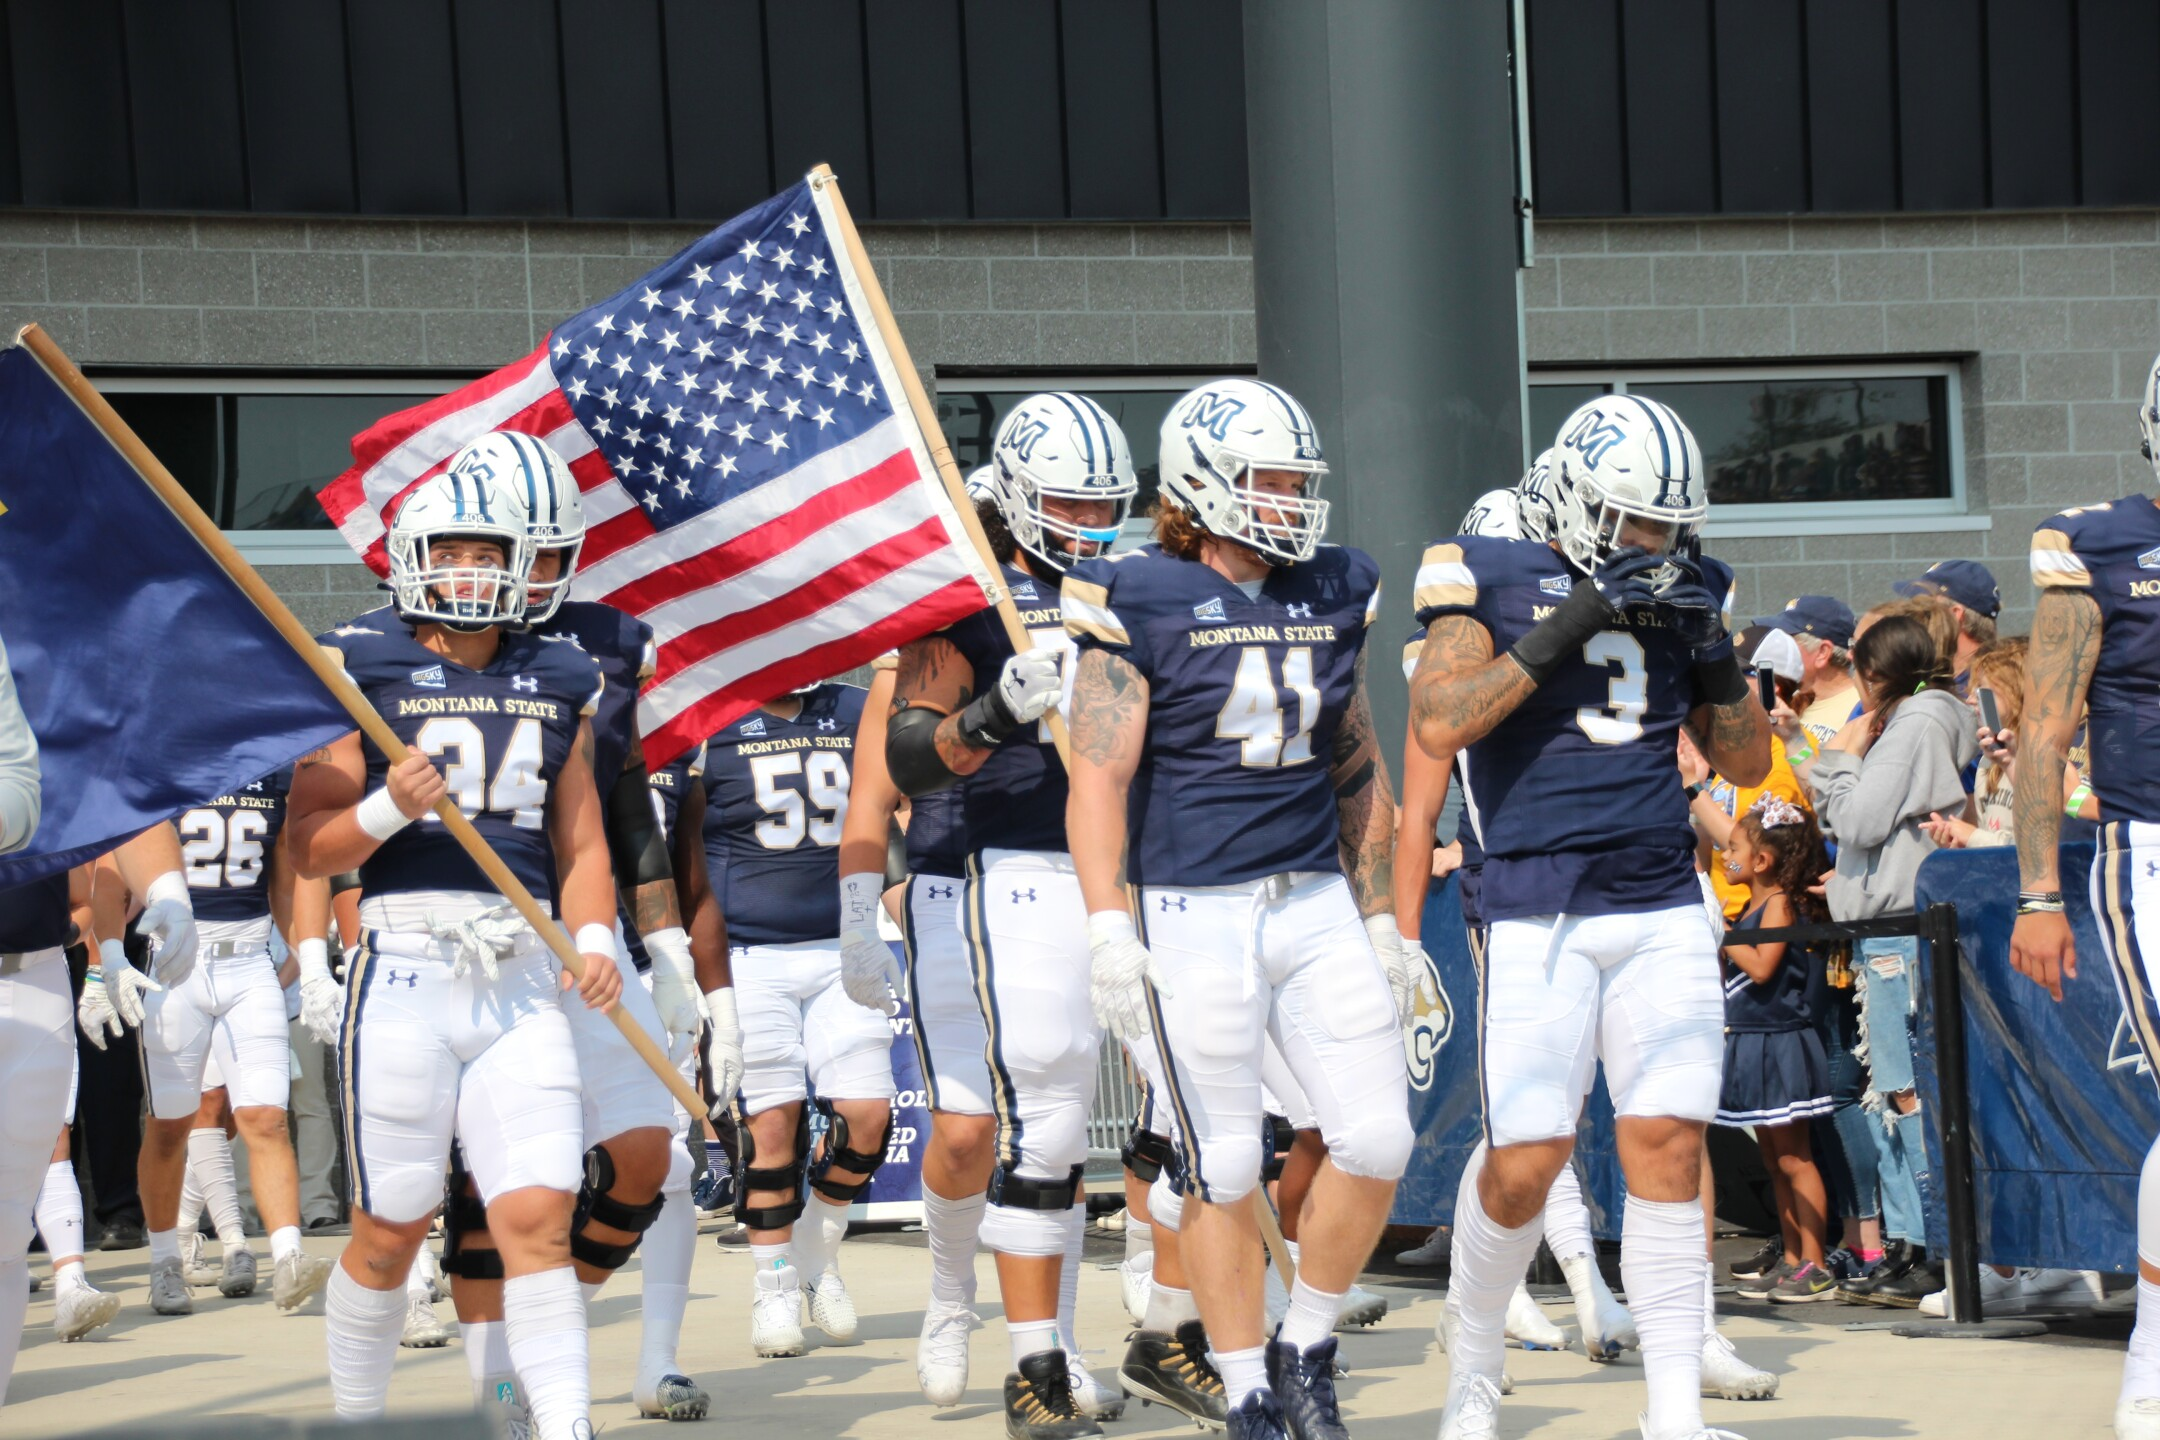 Montana State enters the game against San Diego Toreros